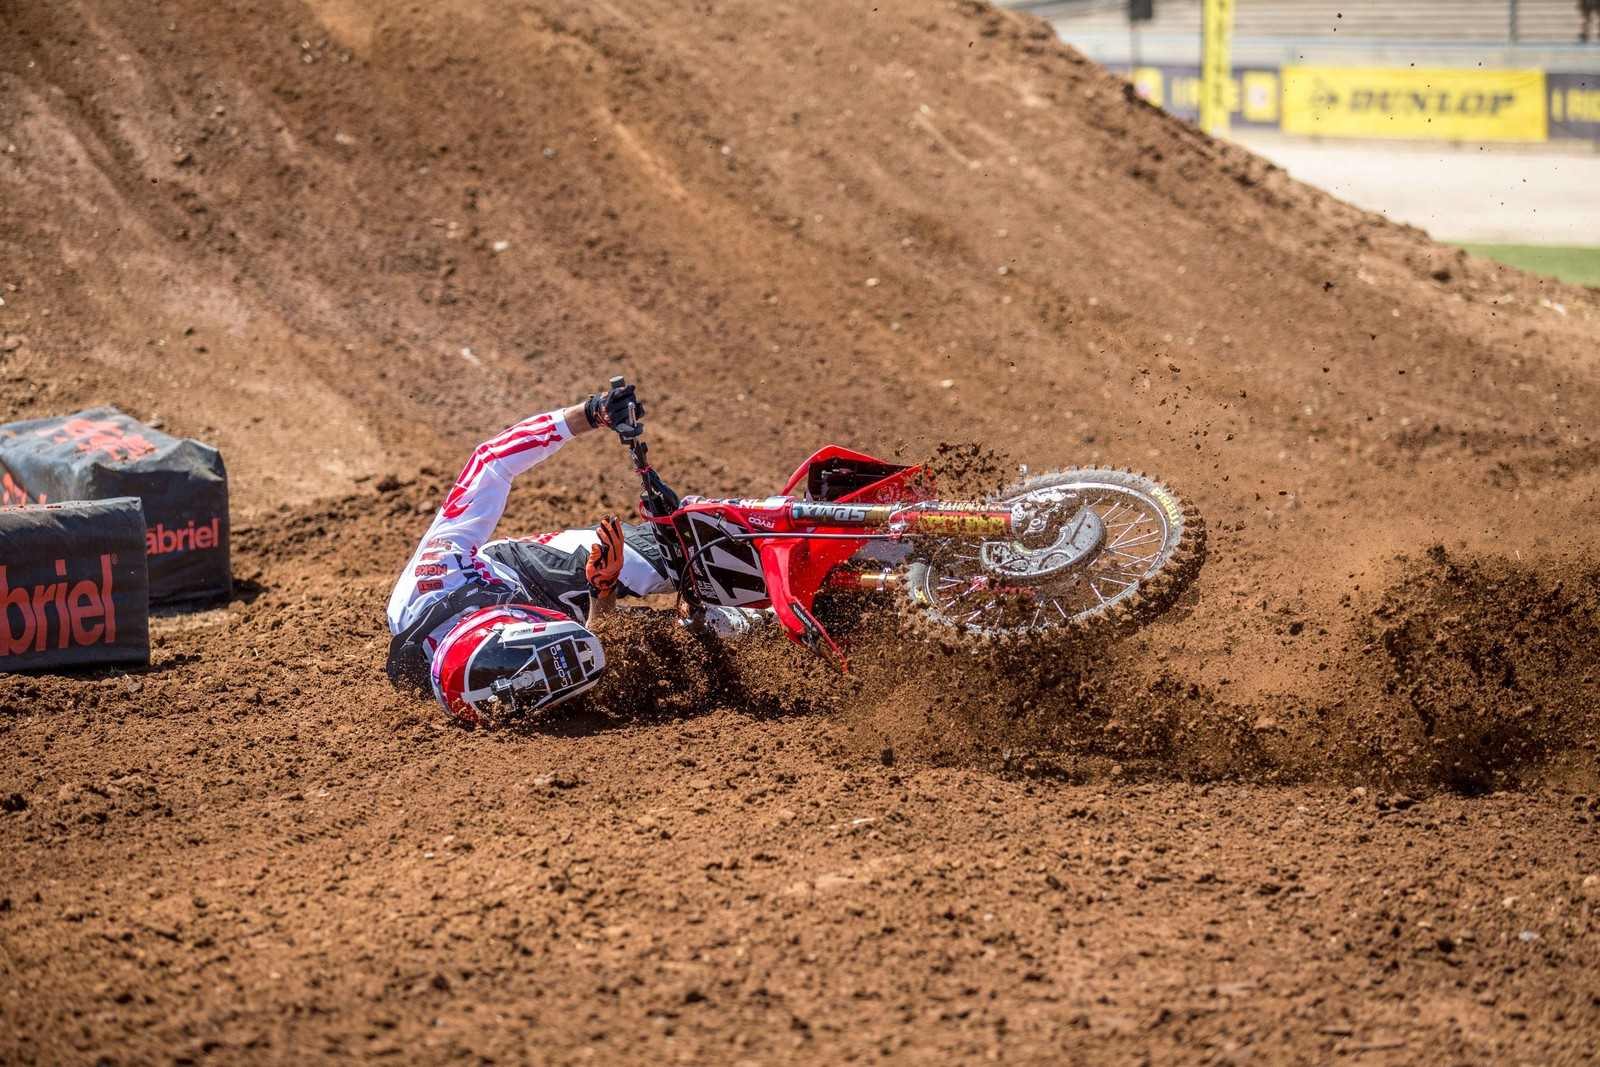 Gavin Faith - Photo Blast: Australian Supercross Championship from Adelaide - Motocross Pictures - Vital MX